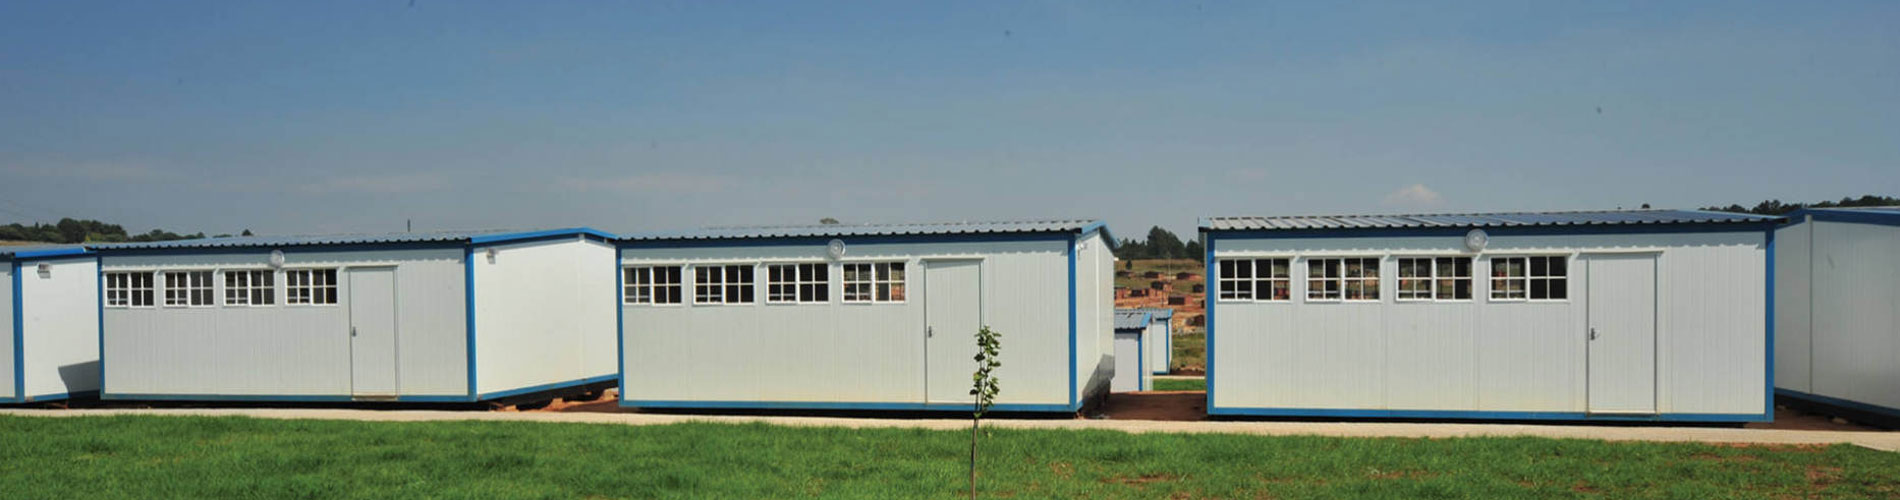 Double-wide mobile office to rent in south africa.